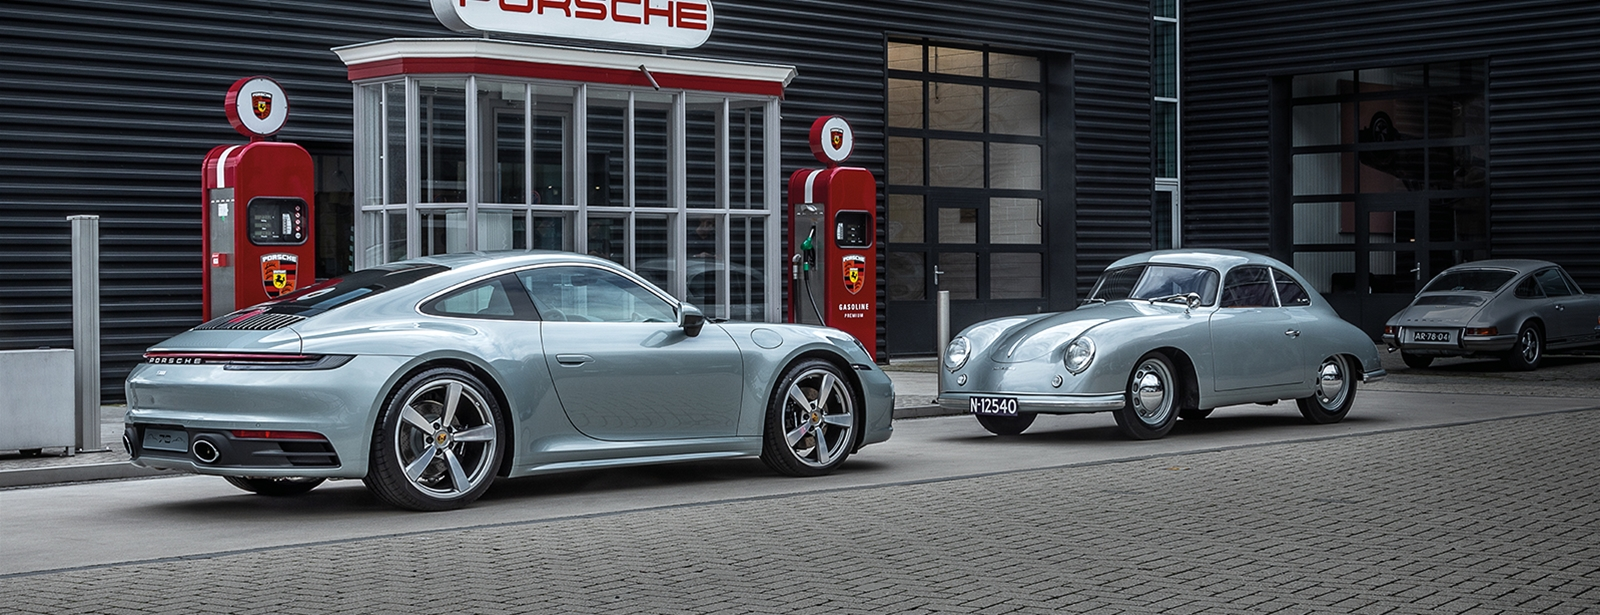 Old meets new. - Limited 911 Carrera 4S Ben Pon jr. edition